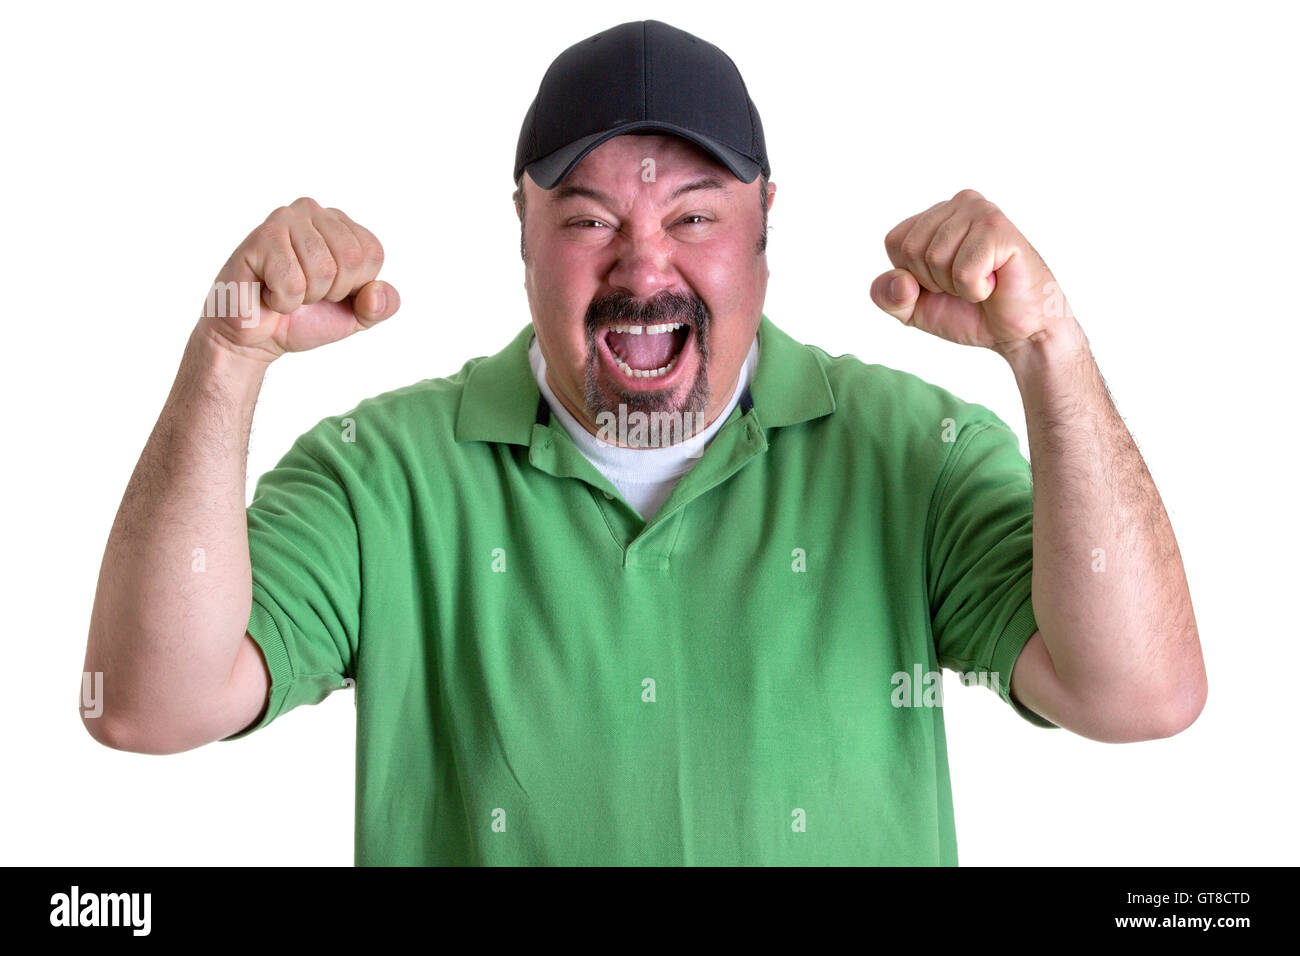 Close up Aggressive Bearded Middle Aged Man in Casual Green Polo Shirt and Black Cap, Yelling Out Loud with Fists - Stock Image